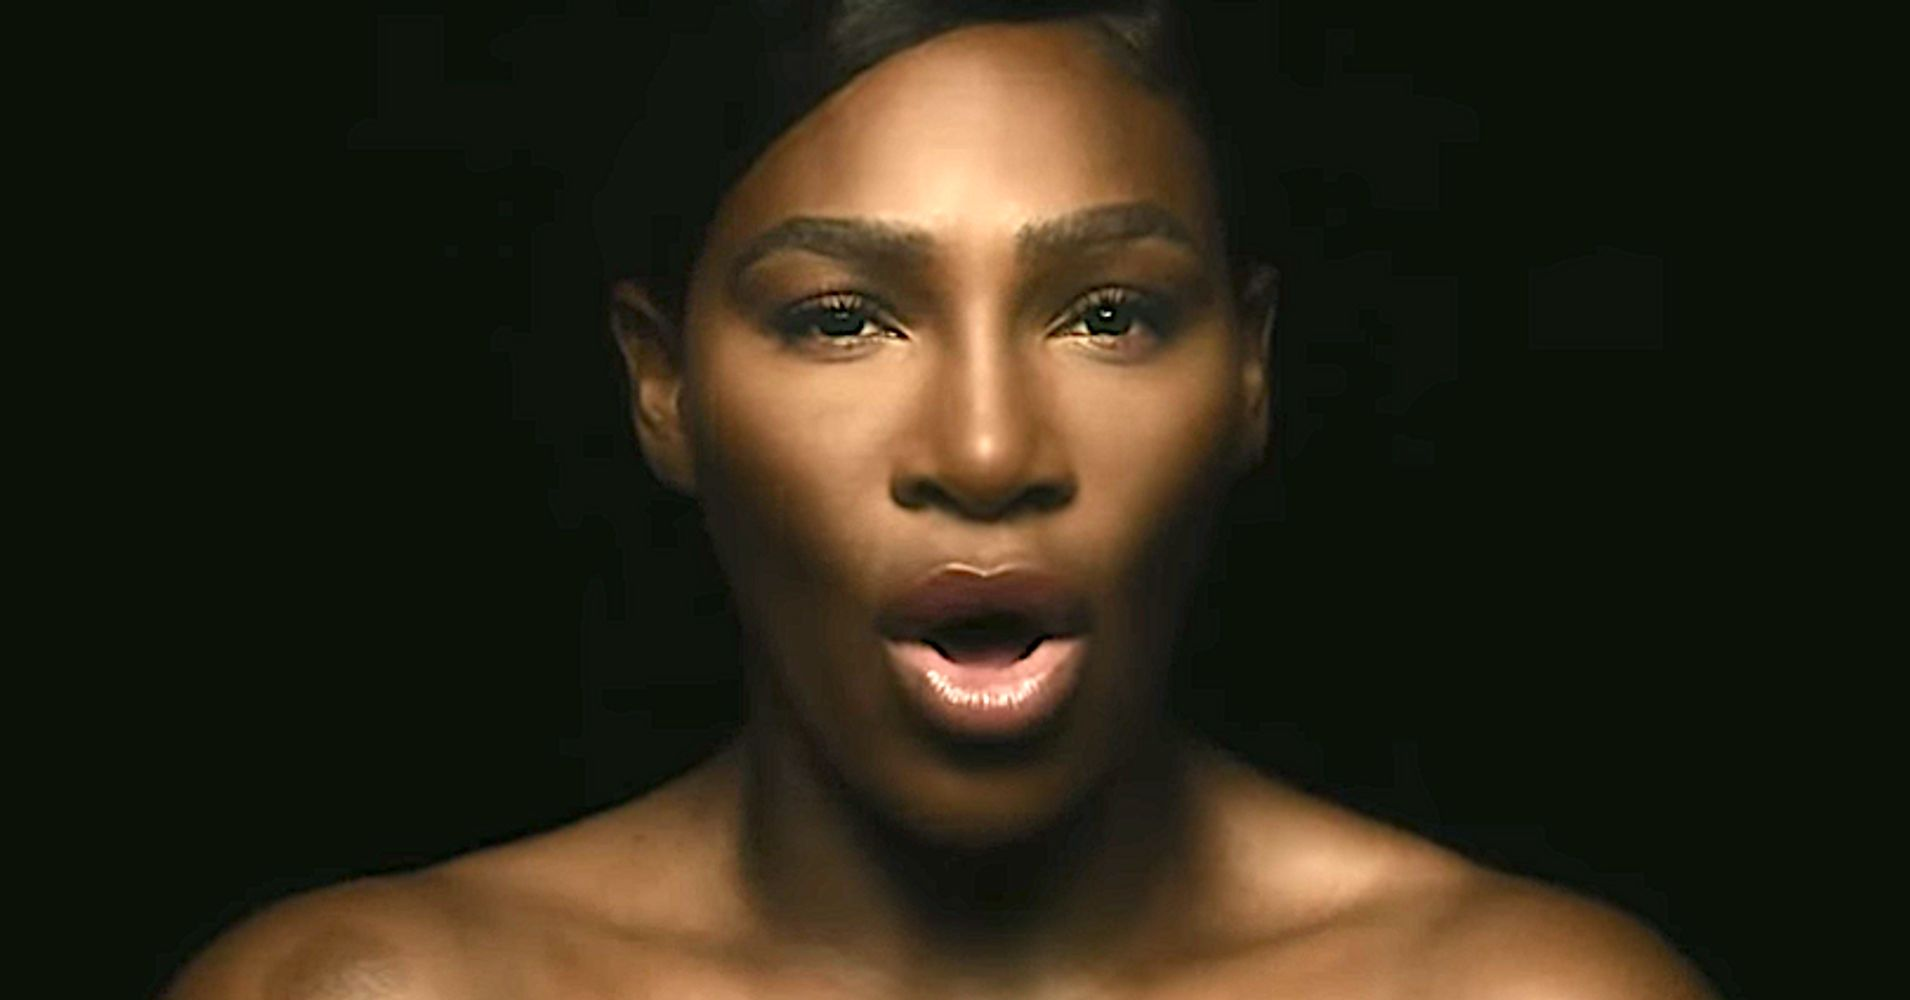 Serena Williams Sings 'I Touch Myself' For Breast Cancer Awareness